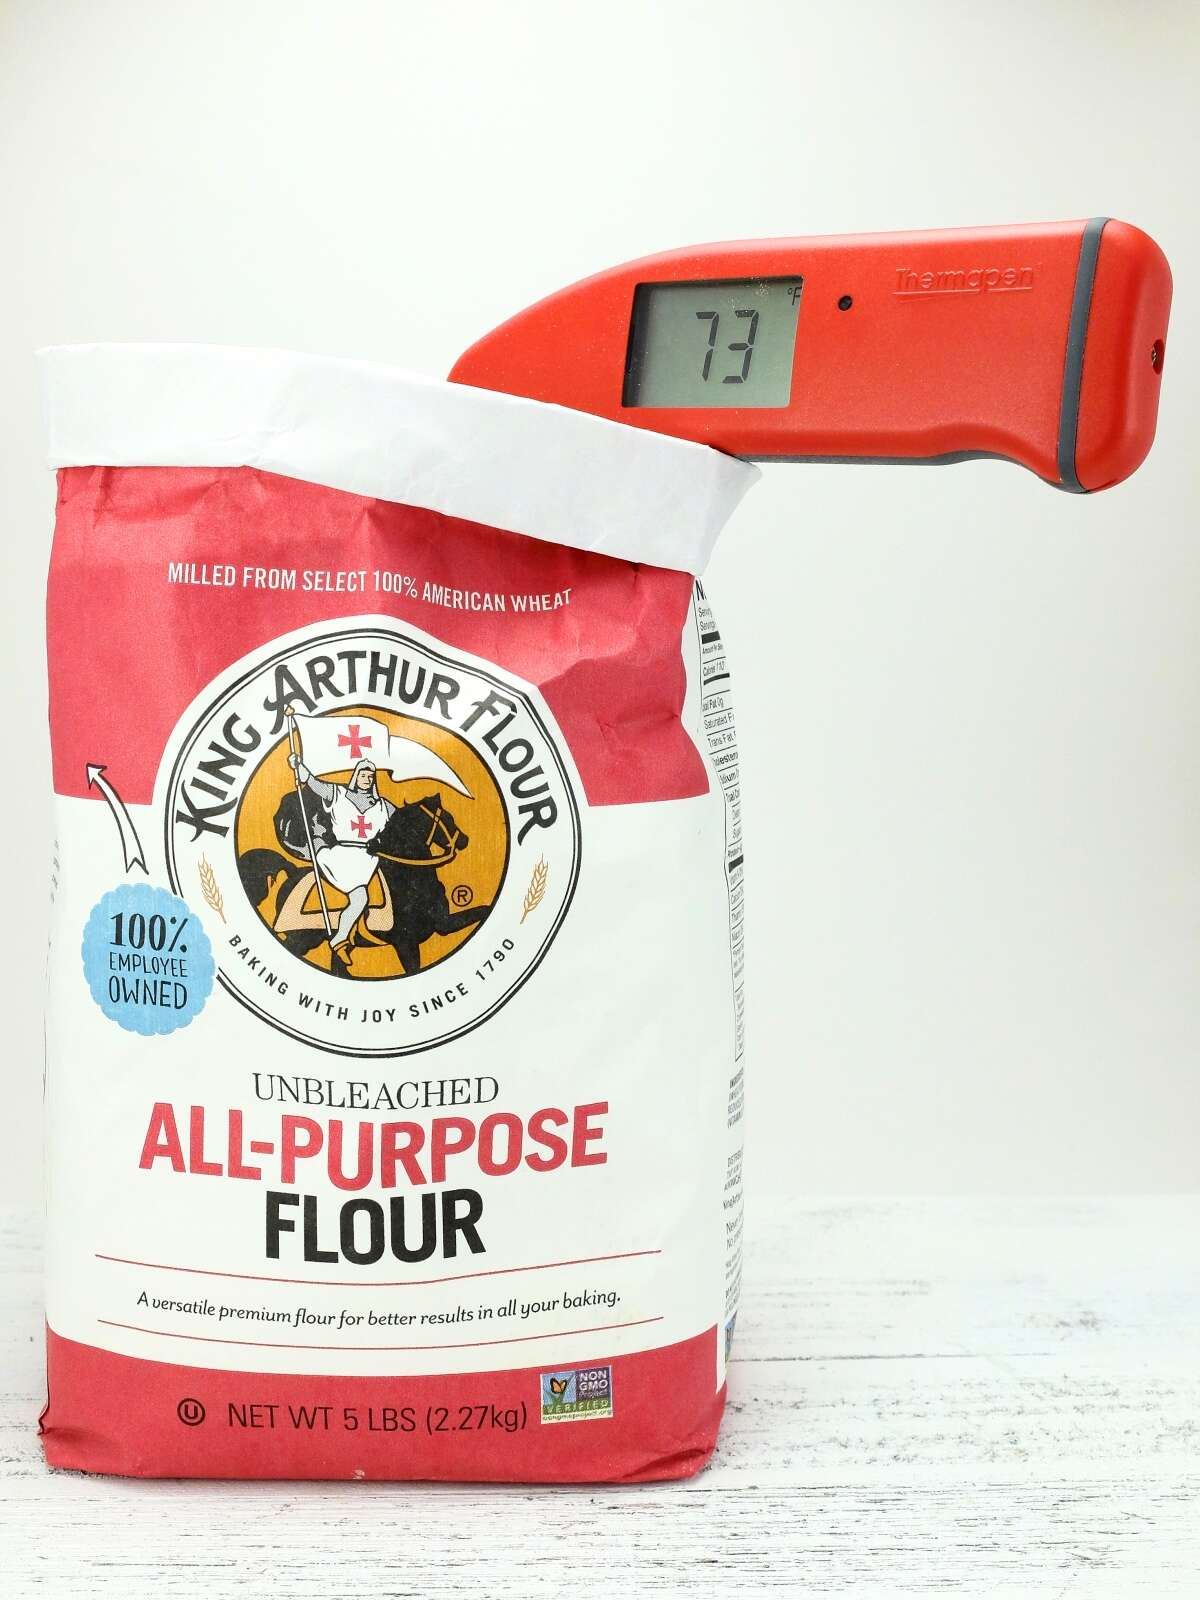 Determining the friction factor in baking via @kingathurflour